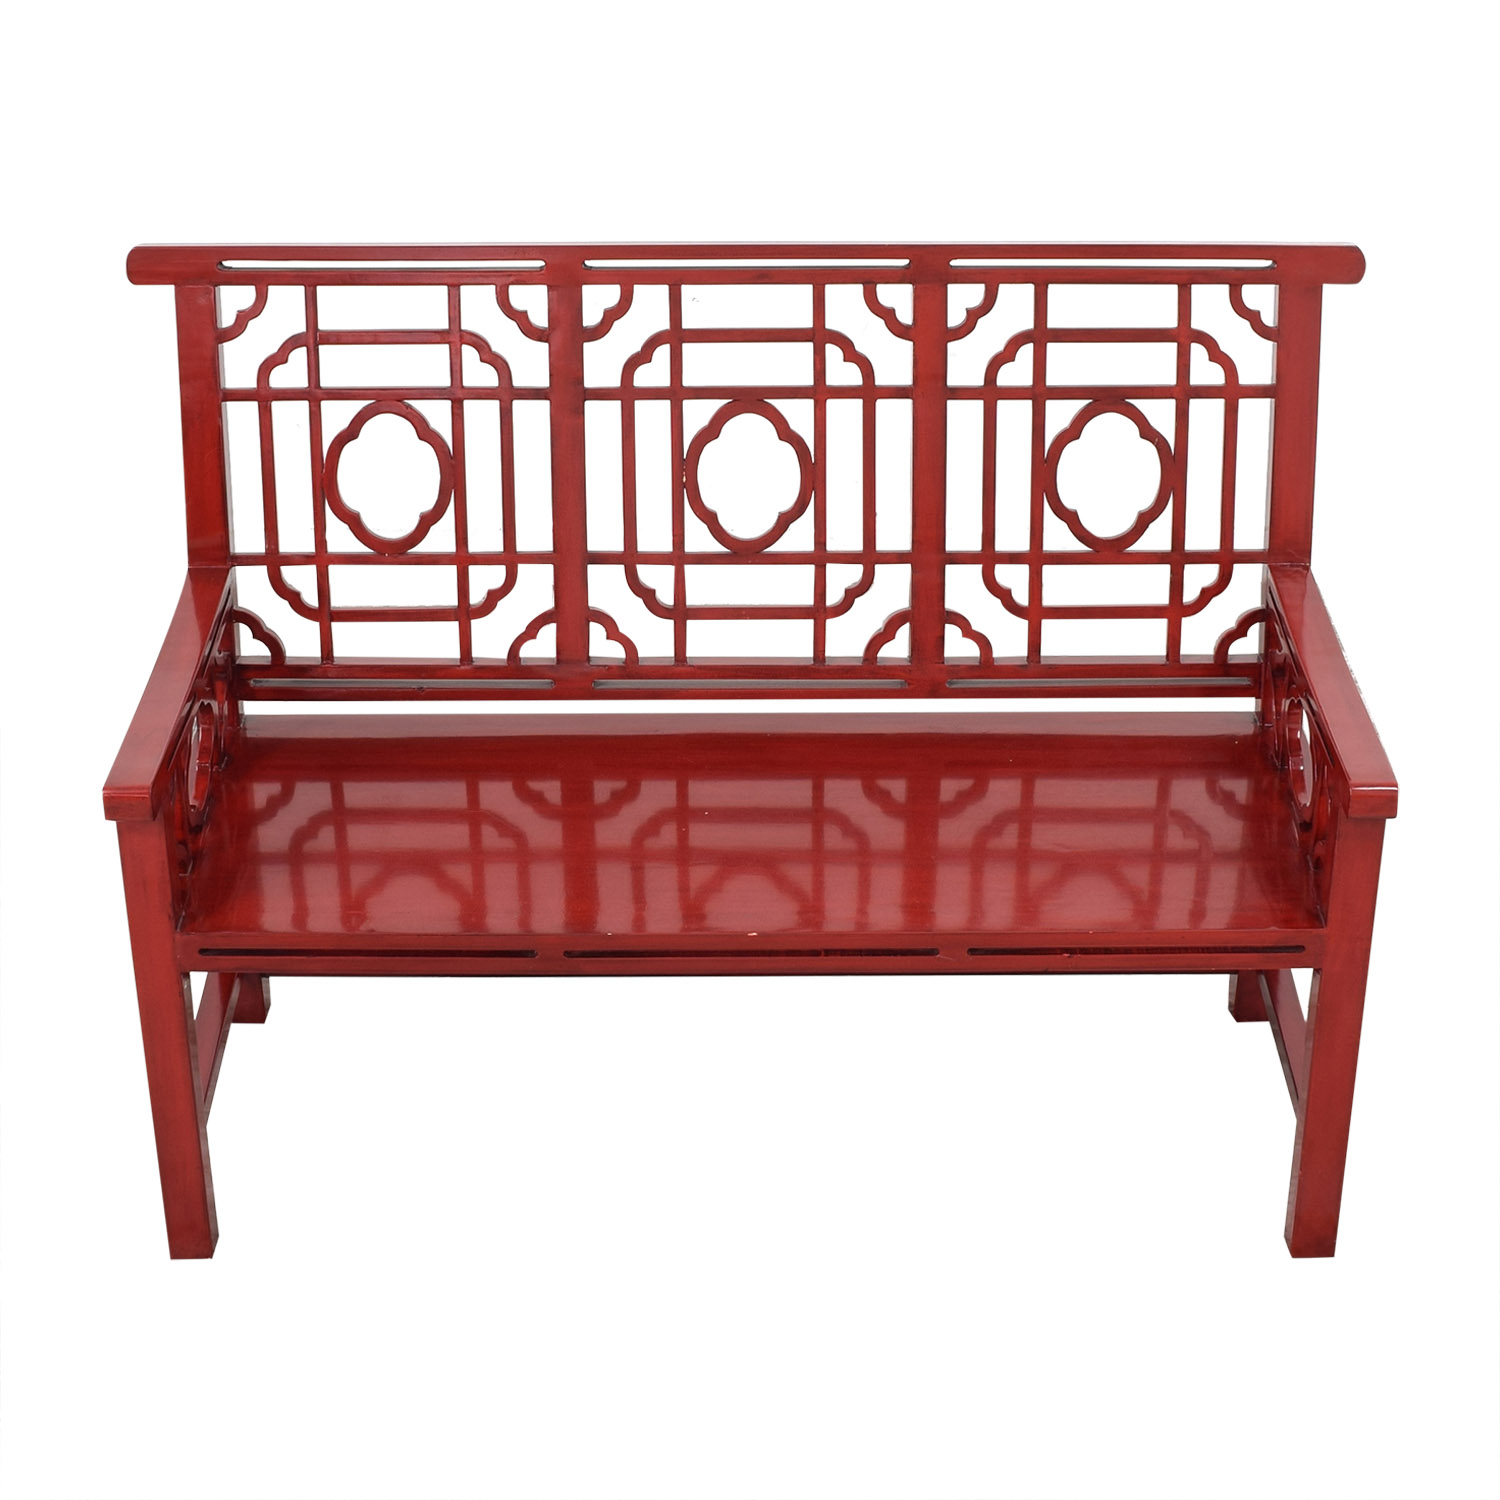 Neiman Marcus Neiman Marcus Chinese Lacquer Bench coupon